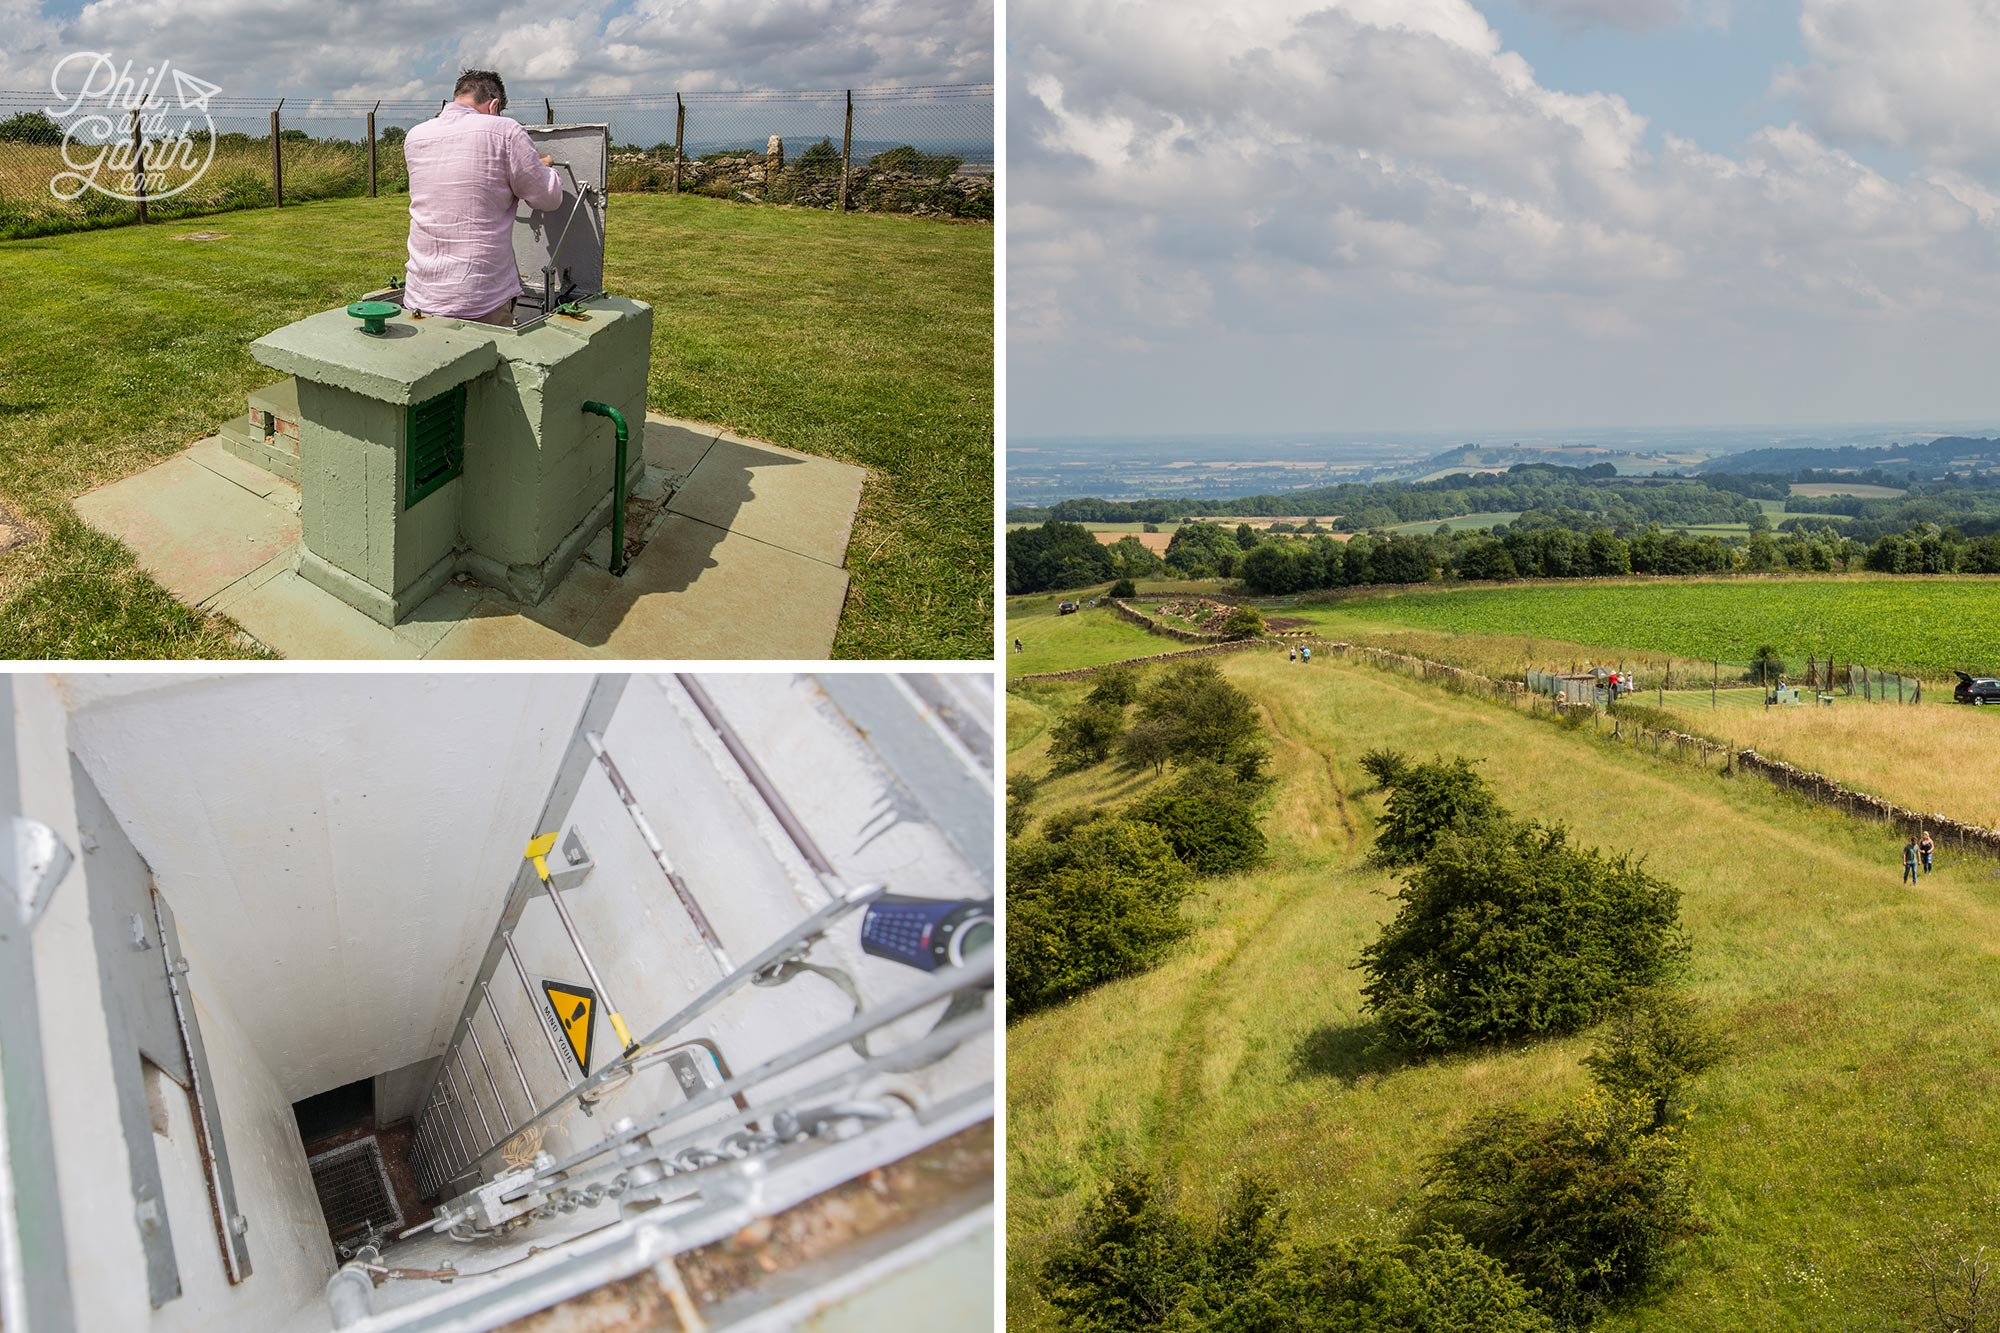 View from the tower of the nuclear bunker, and Phil climbing down the ladder